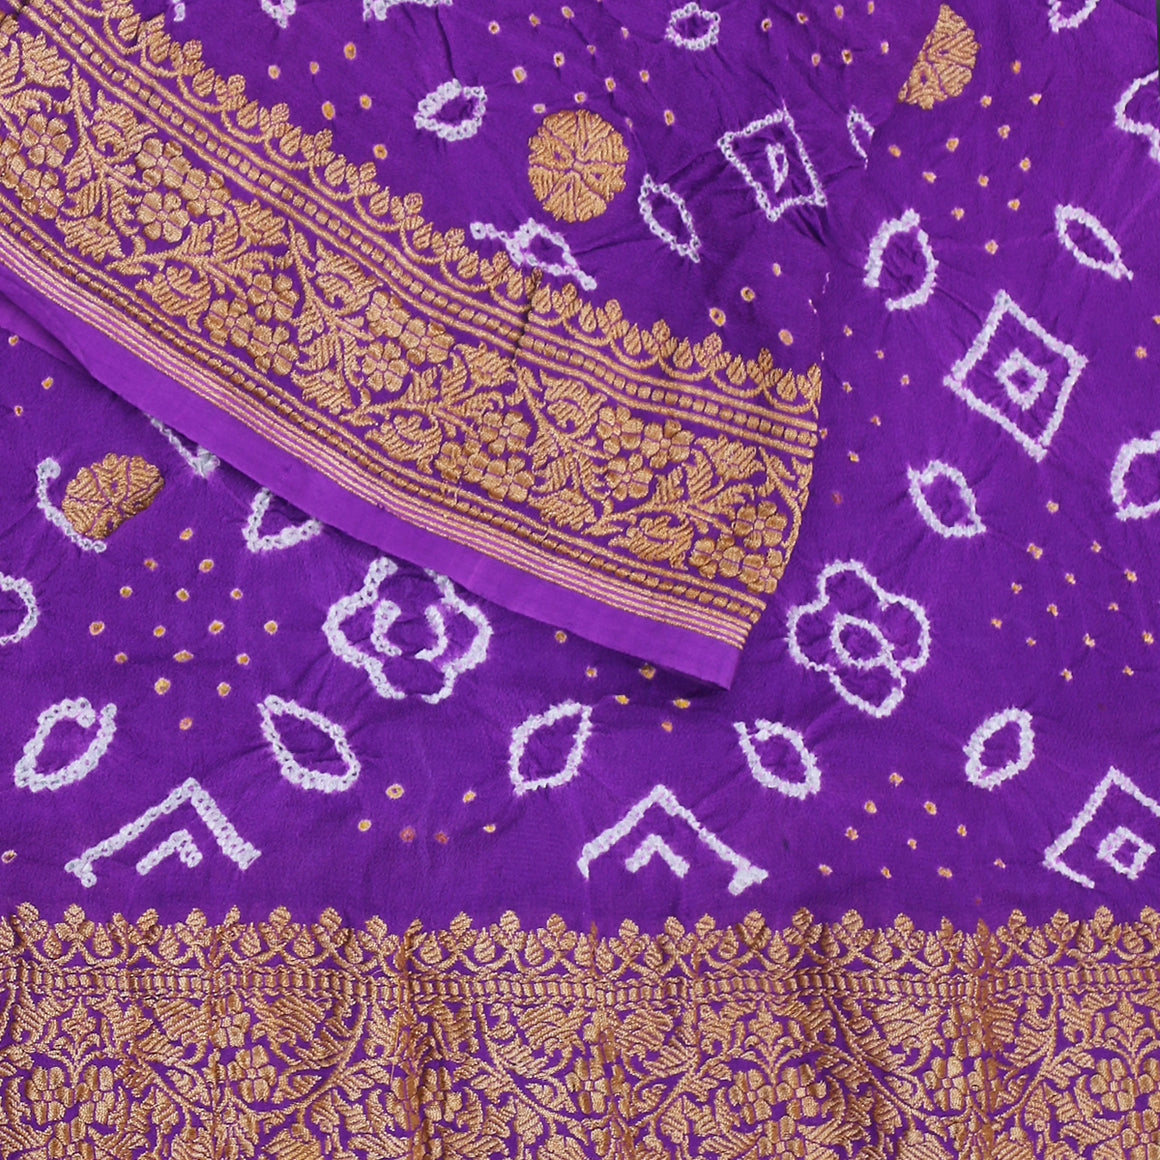 Handwoven Banarasi Bandhej Dupatta in purple with kadhwa booti